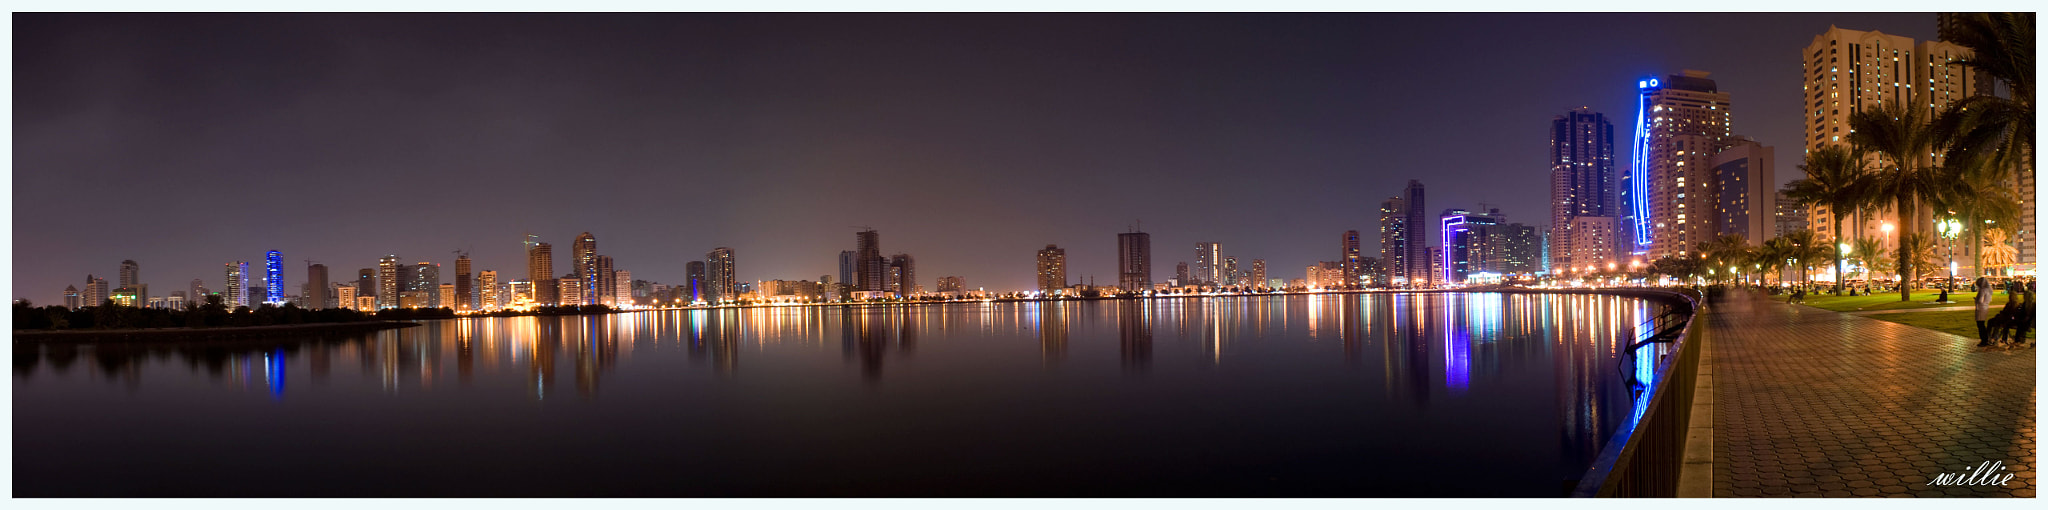 Photograph sharja uae @ night by willie centeno on 500px